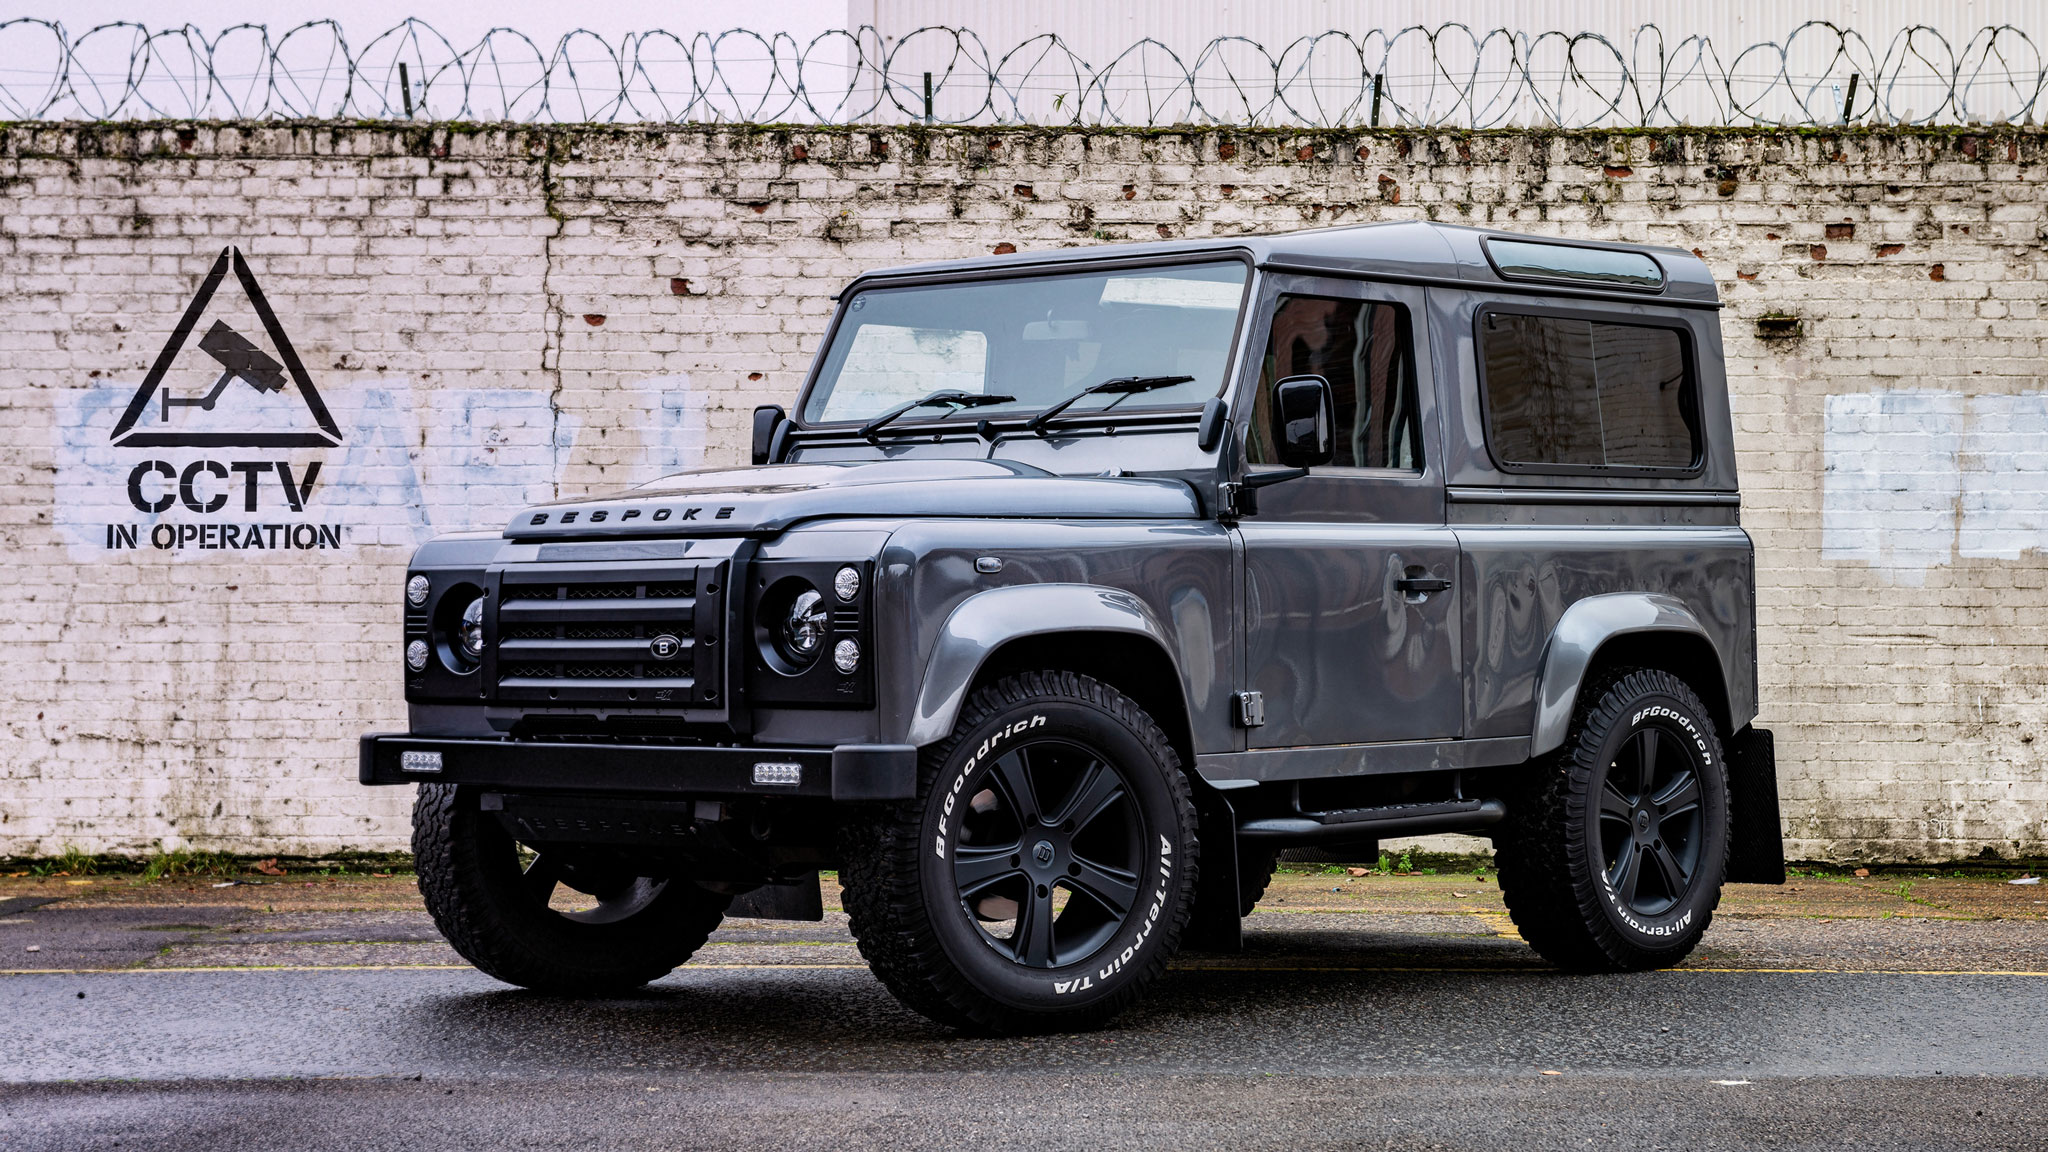 Bespoke Defender shot by Dean Wright Automotive